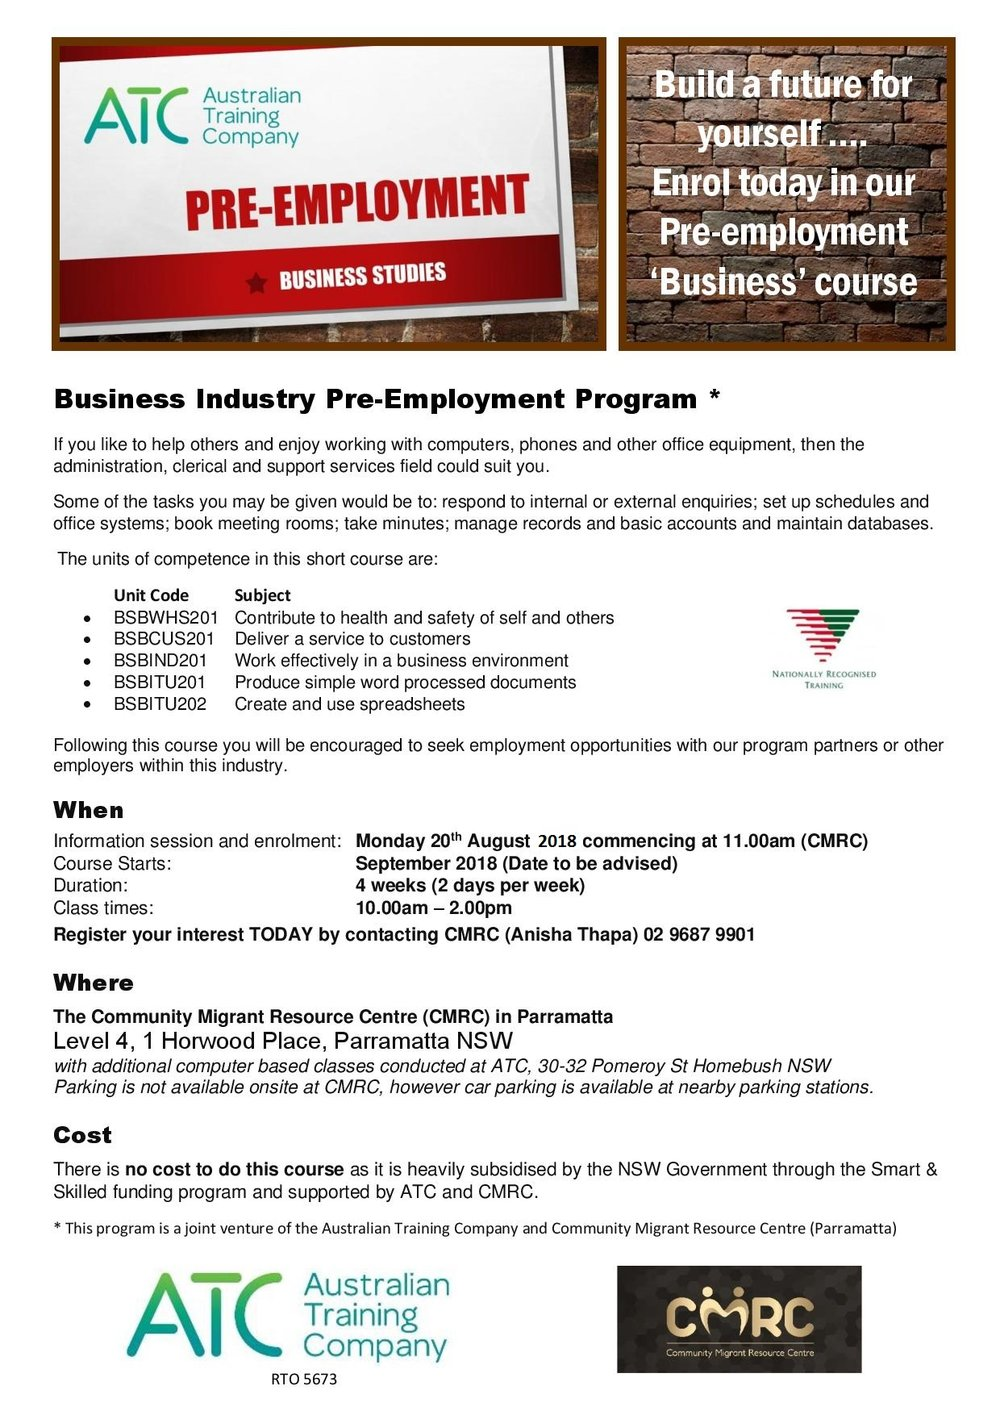 Pre employment Business course CMRC-page-001.jpg